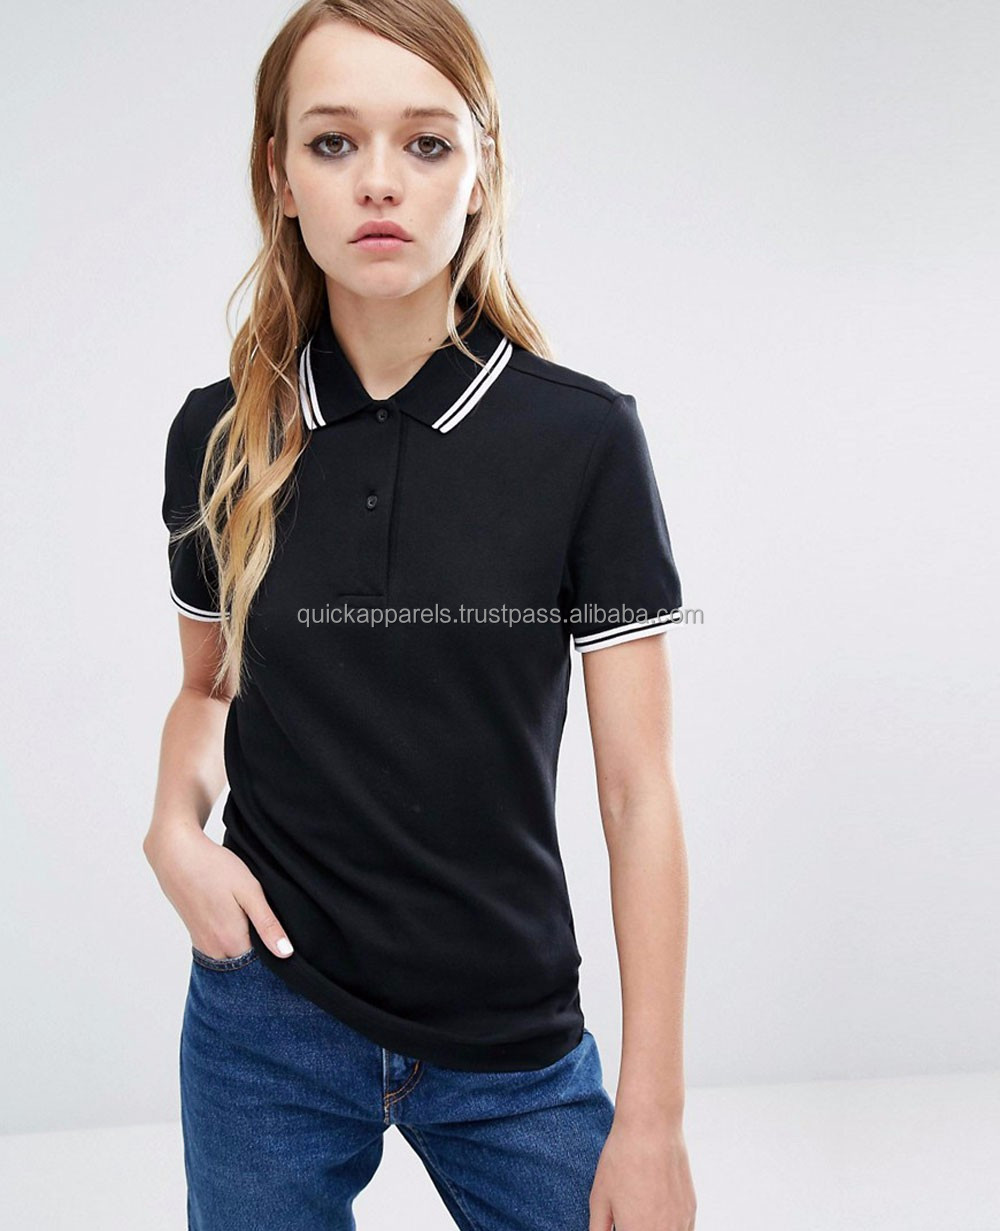 usa best selling high quality pink women wholesale cheap polo t shirts